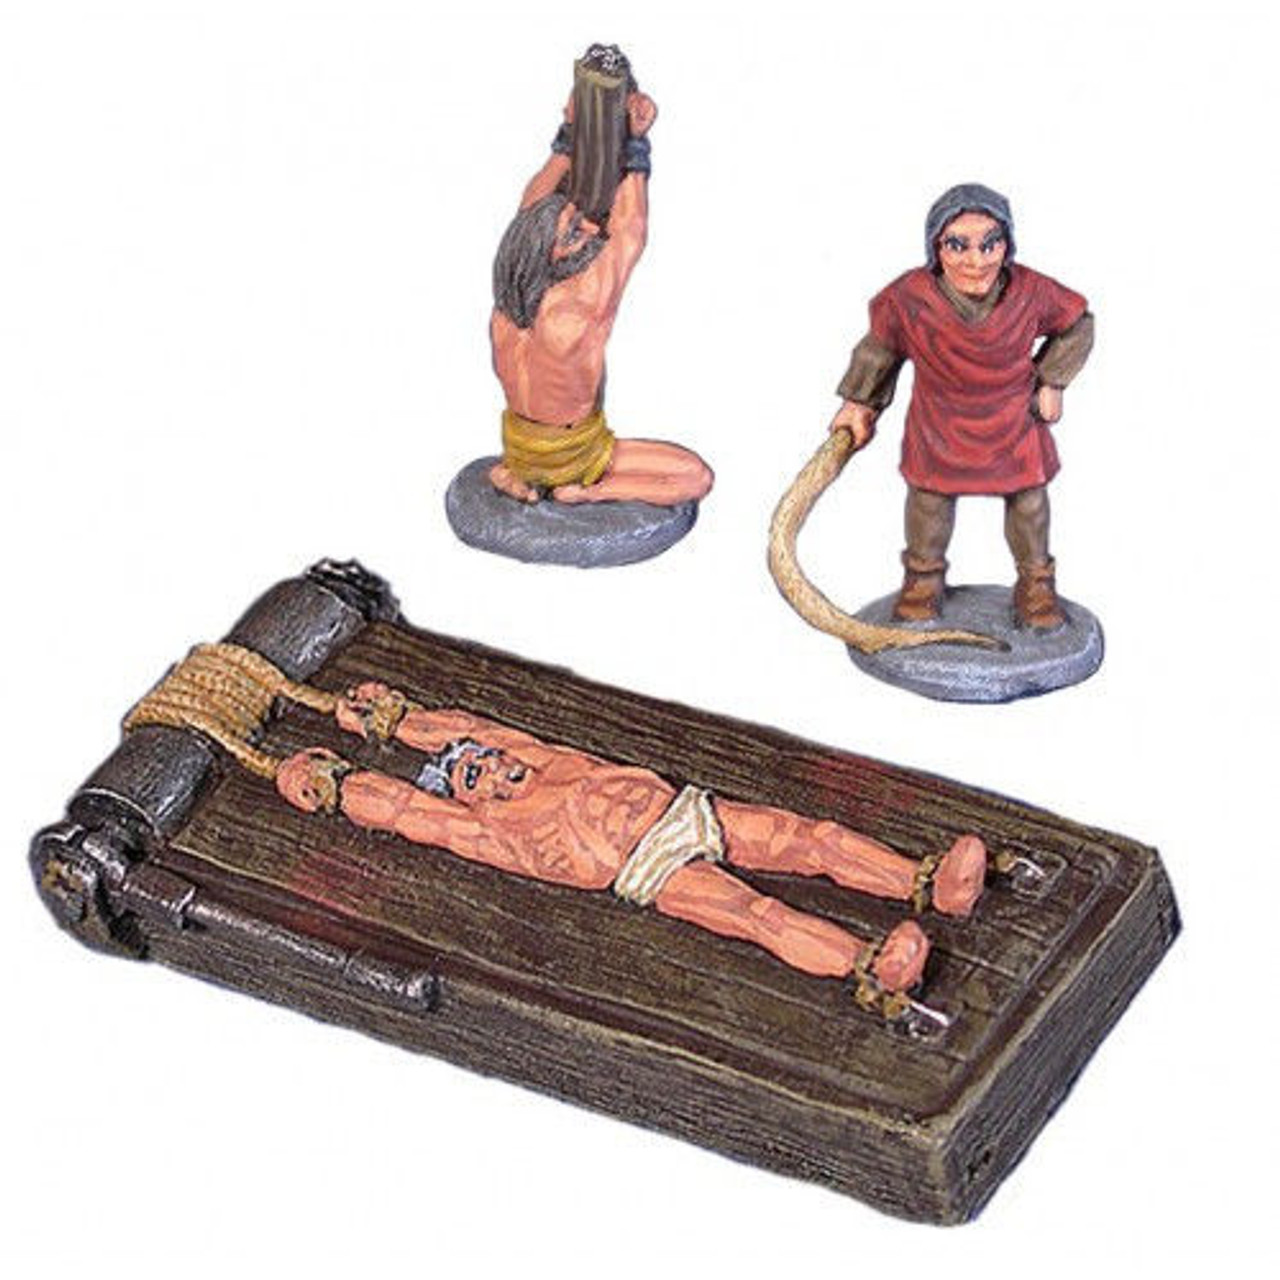 4964db014 Dungeon decor for the torture chamber in 28mm scale. There is the torturer,  a